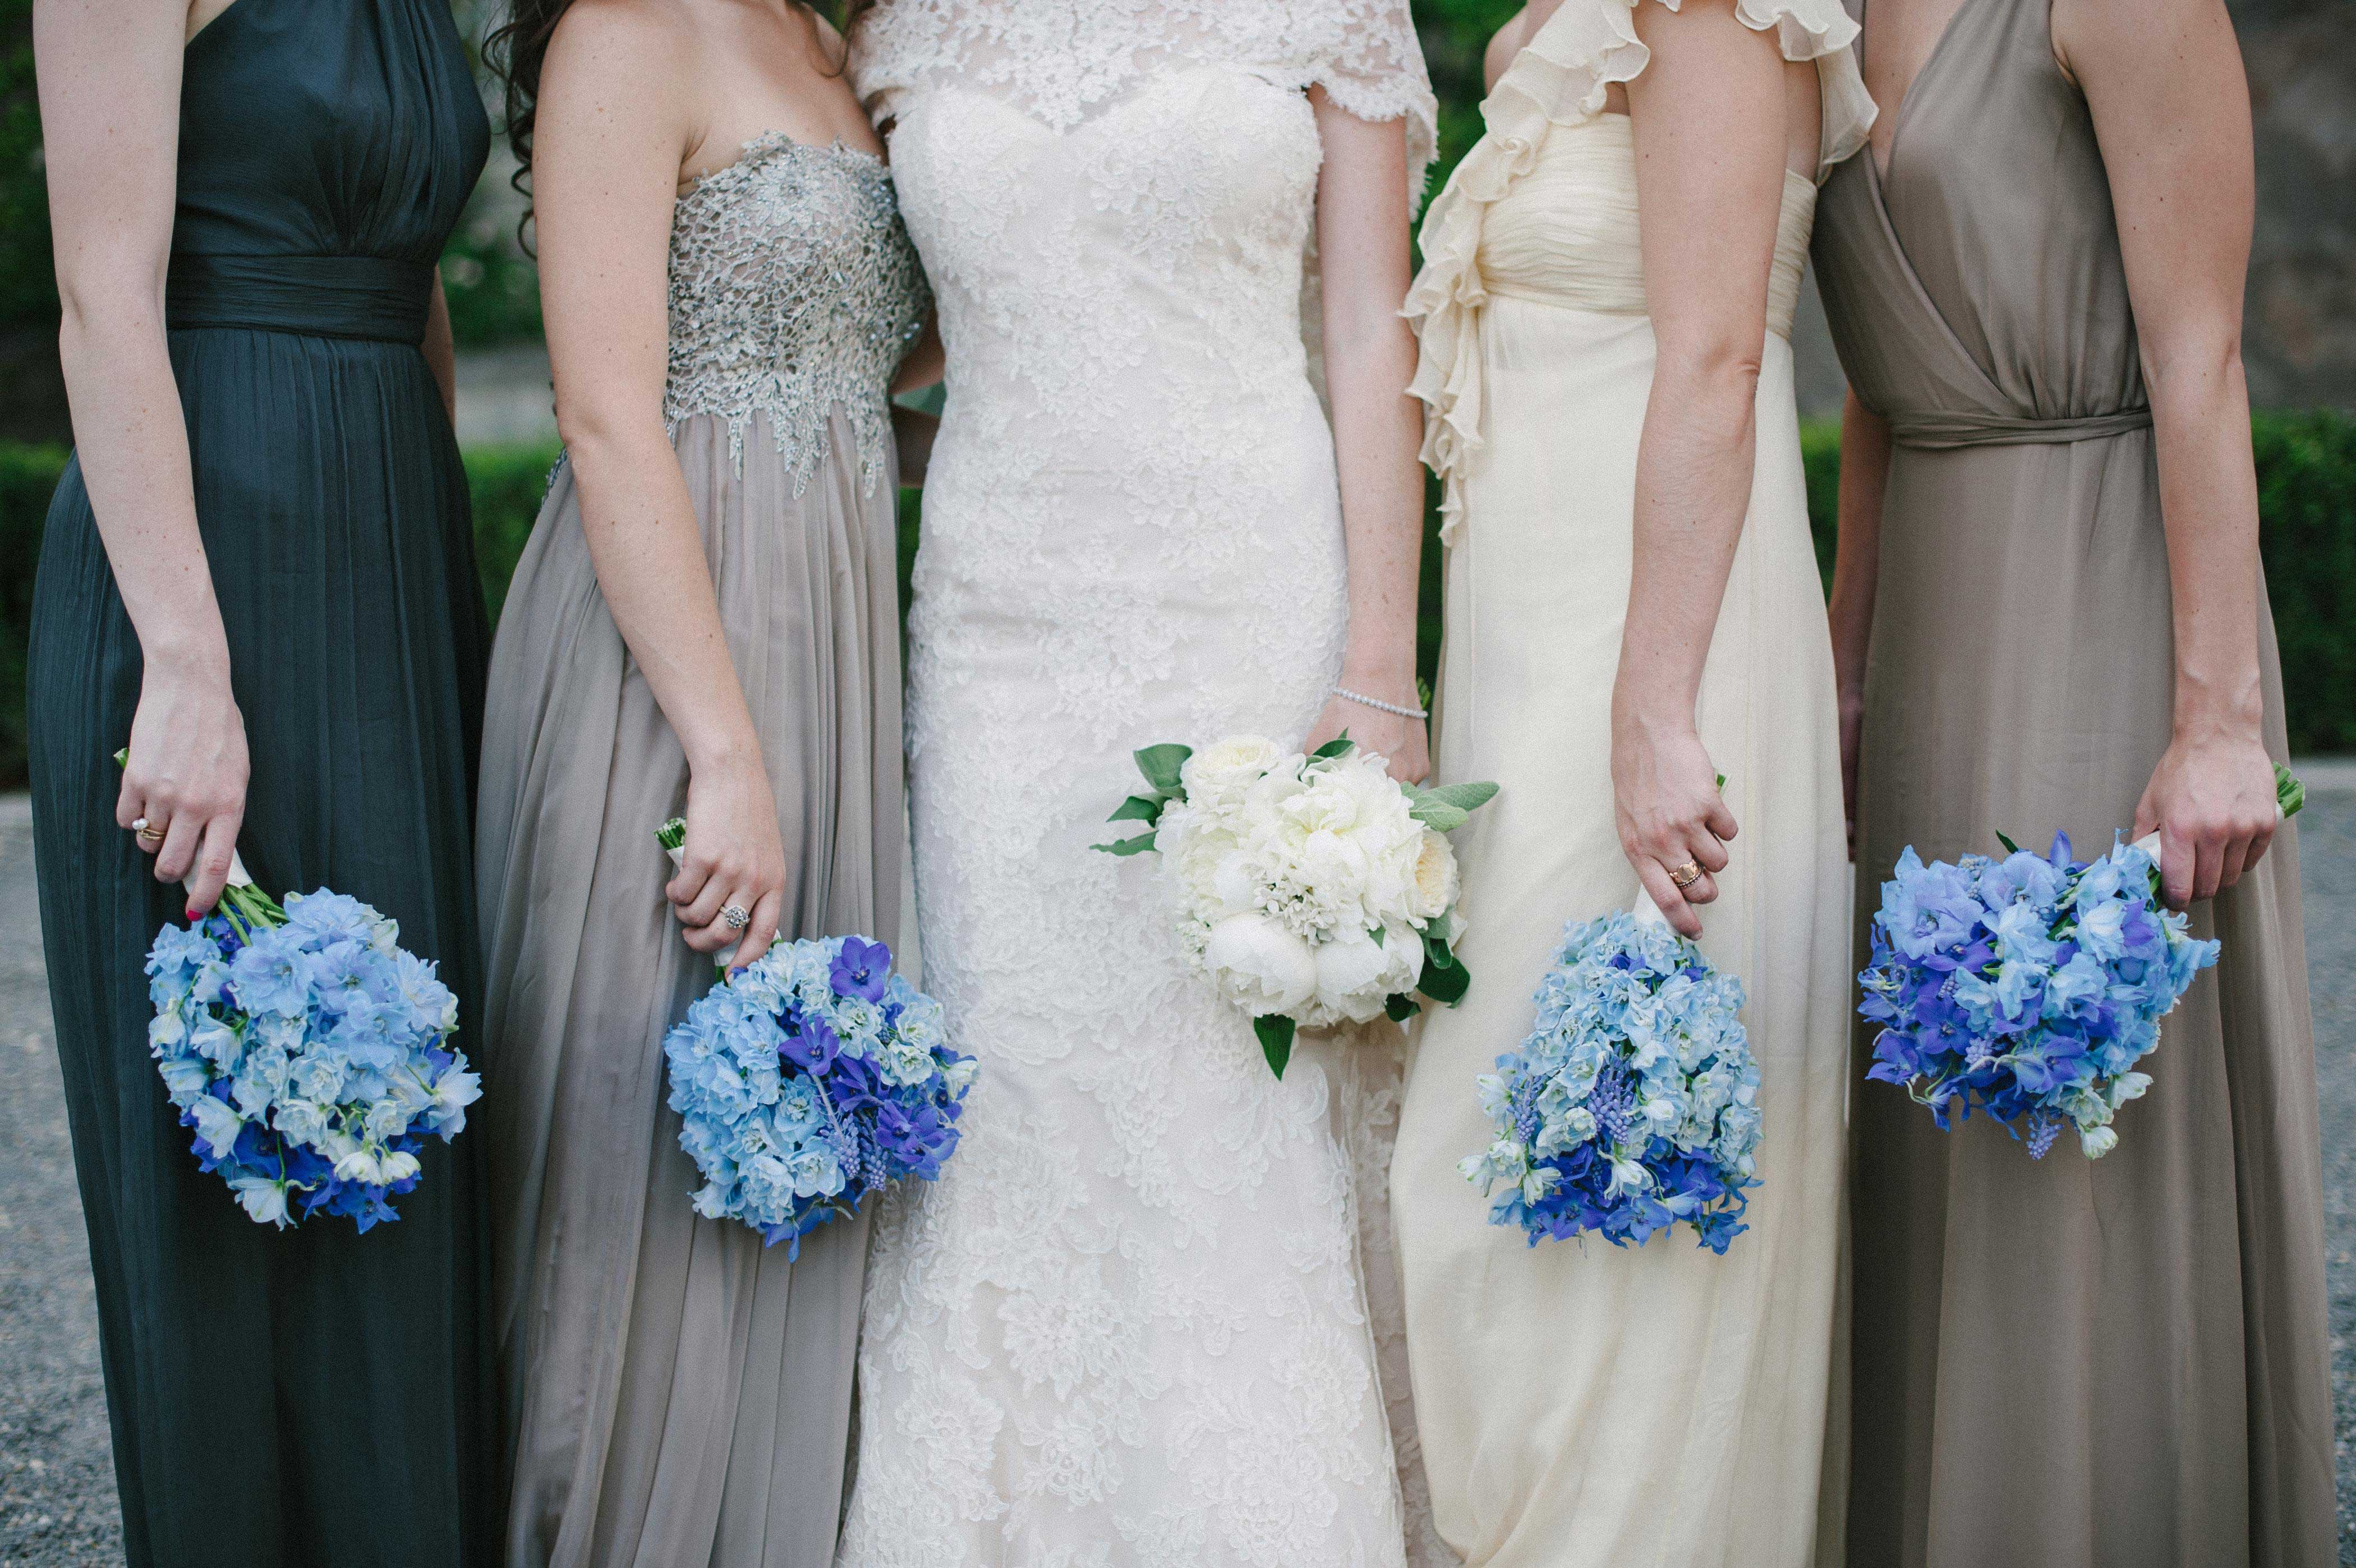 Bridesmaids with bright blue bouquets